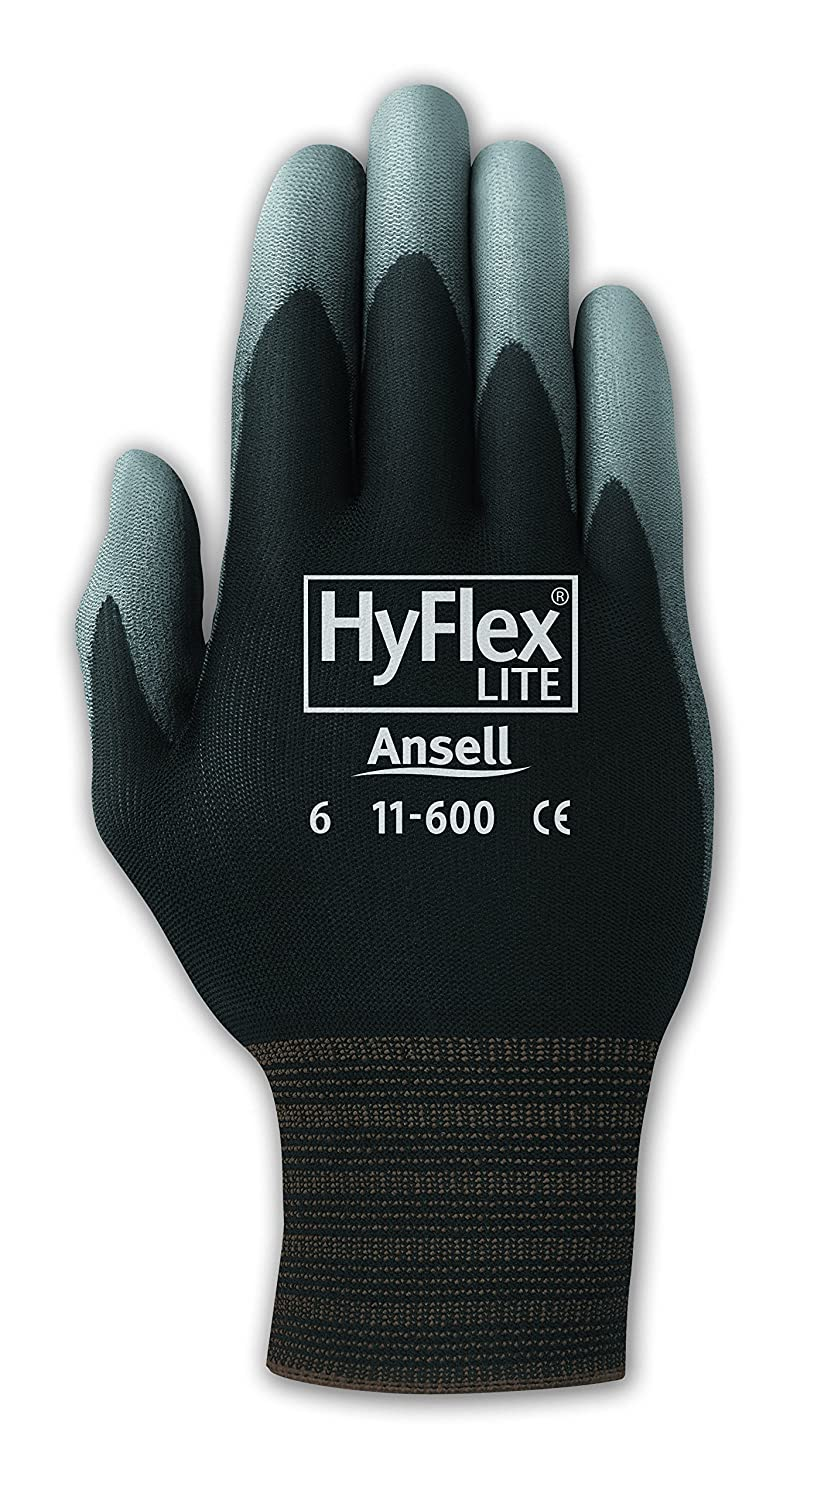 Black Ansell 103362 HyFlex PU Coated Knit Lined Assembly Glove 9 Pack of 12